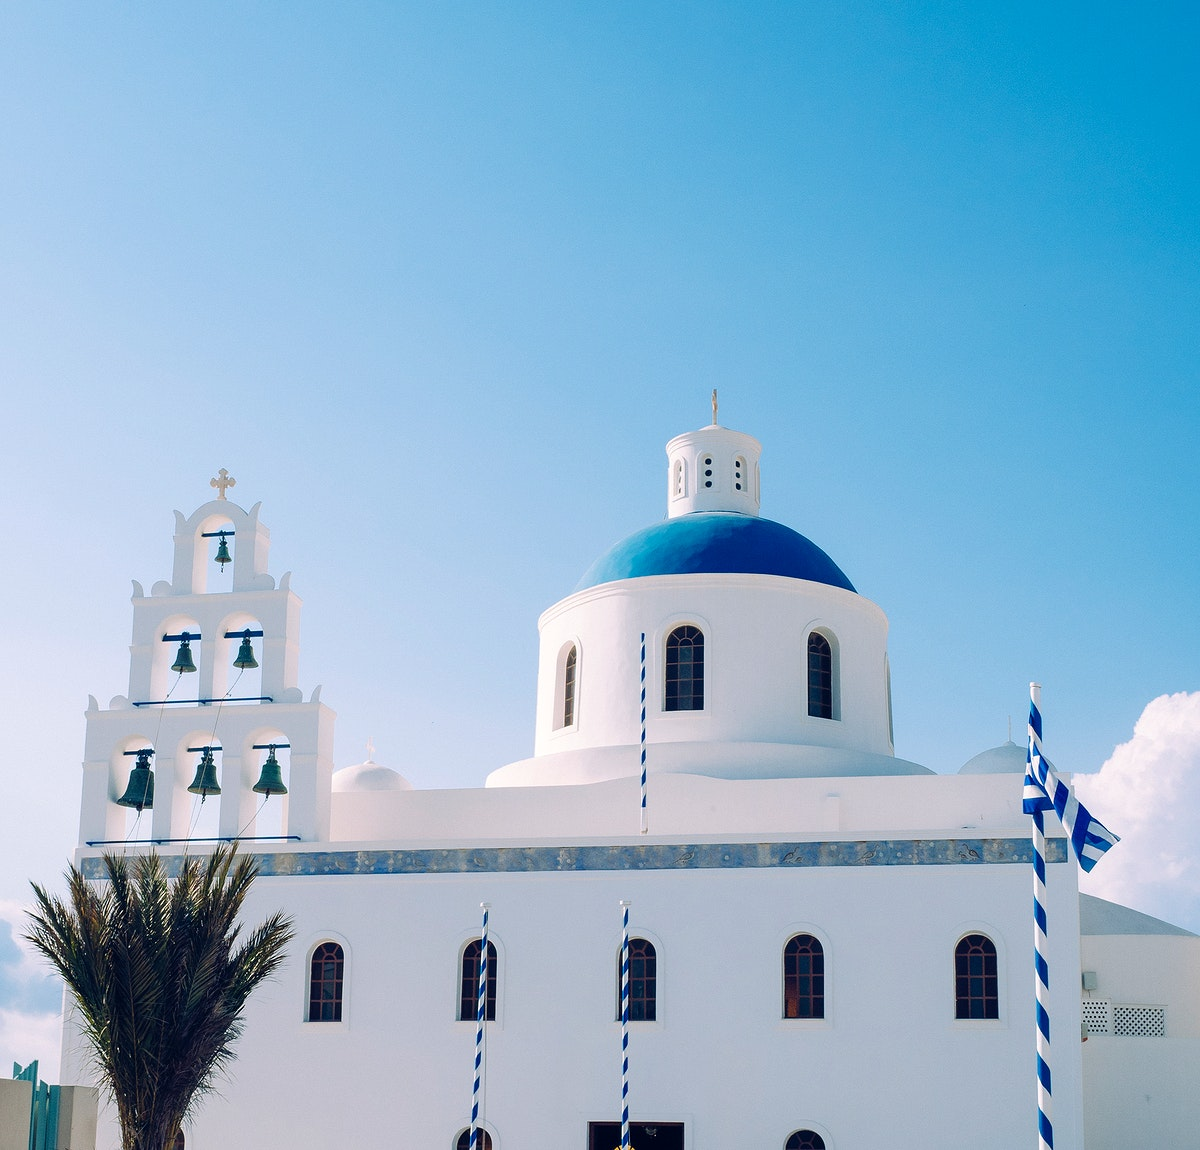 View of whitewashed and blue domed church in Santorini, Greece